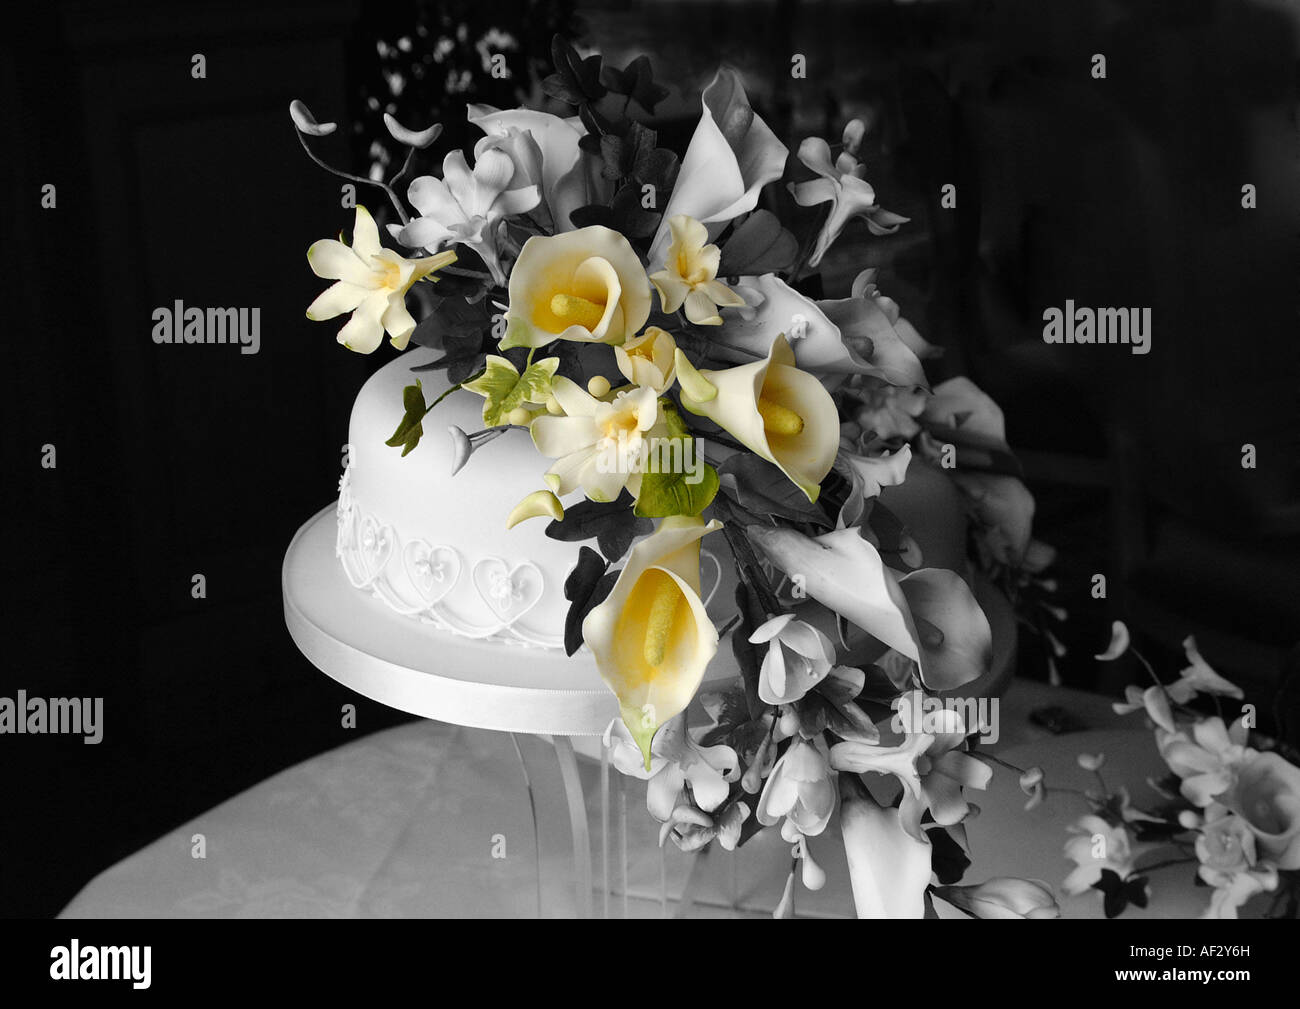 Wedding cake in black and white with some sugar flowers in colour stock photo wedding cake in black and white with some sugar flowers in colour dhlflorist Image collections